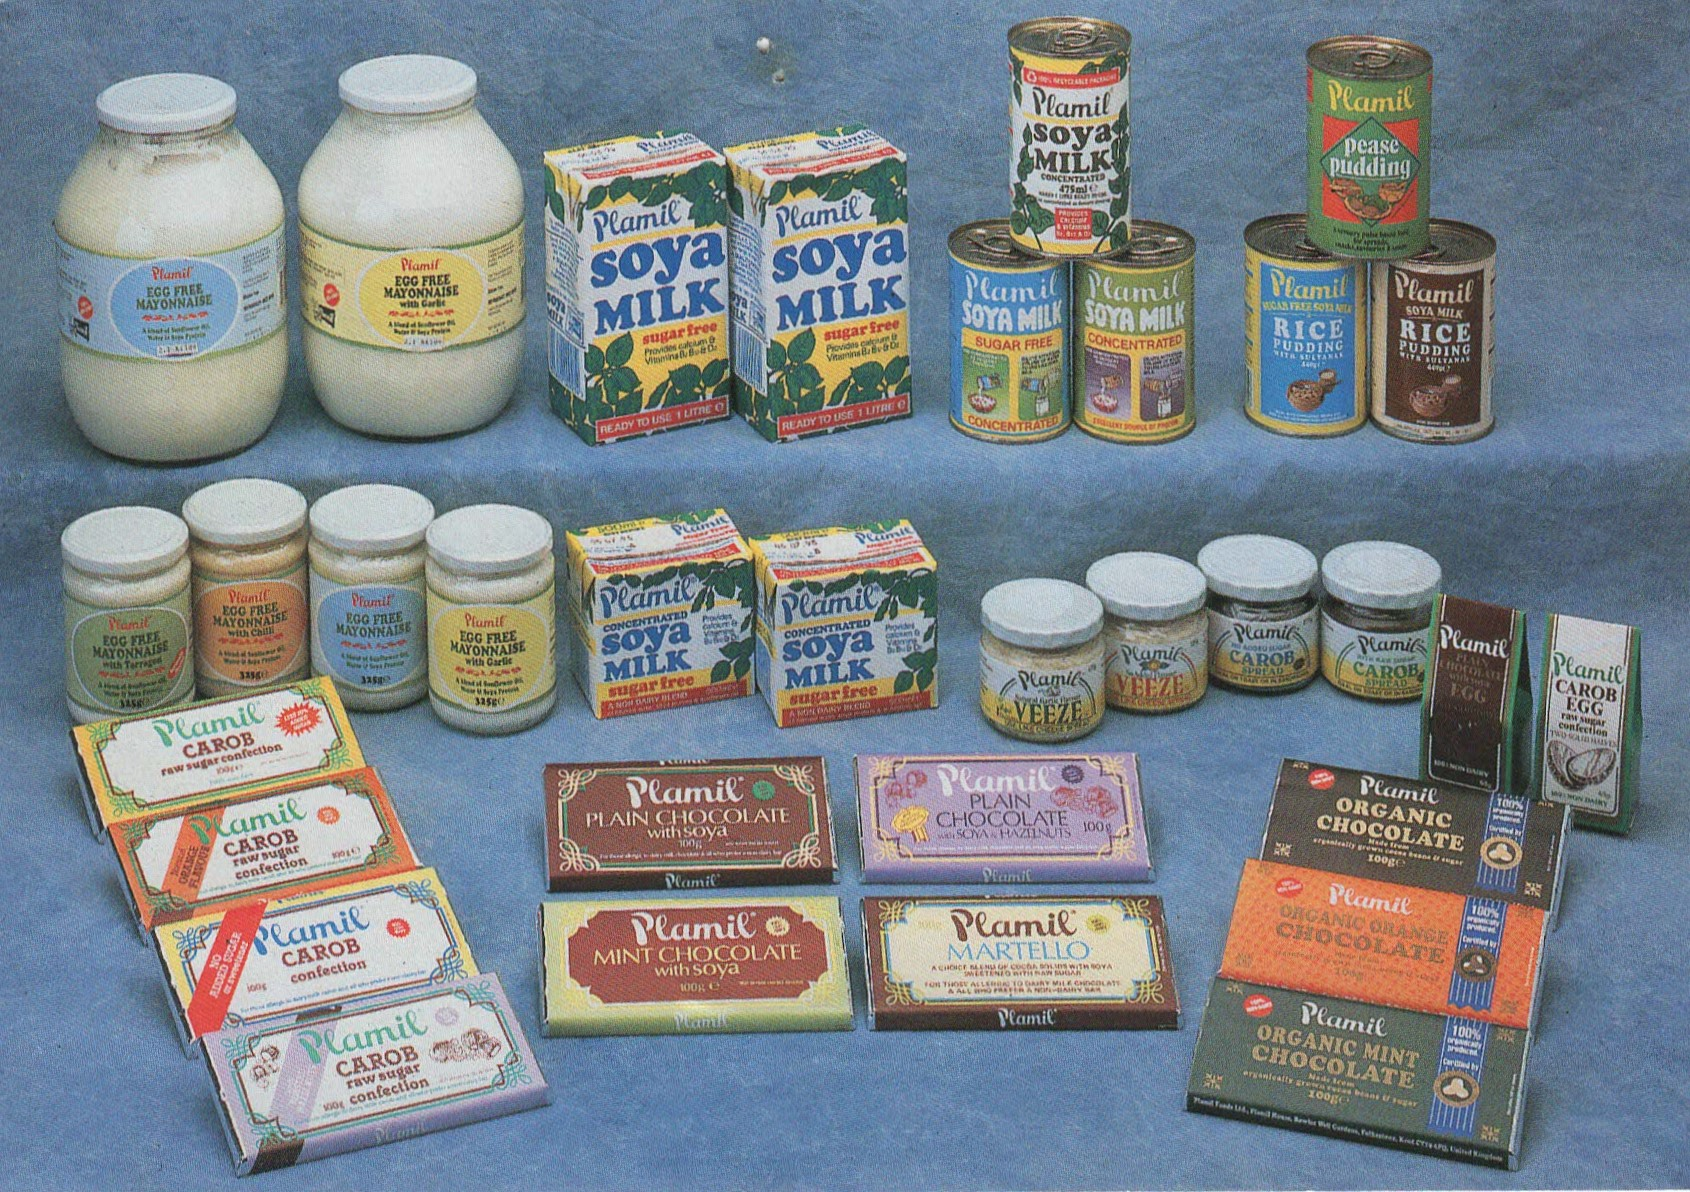 Plamil's range from the 1980s